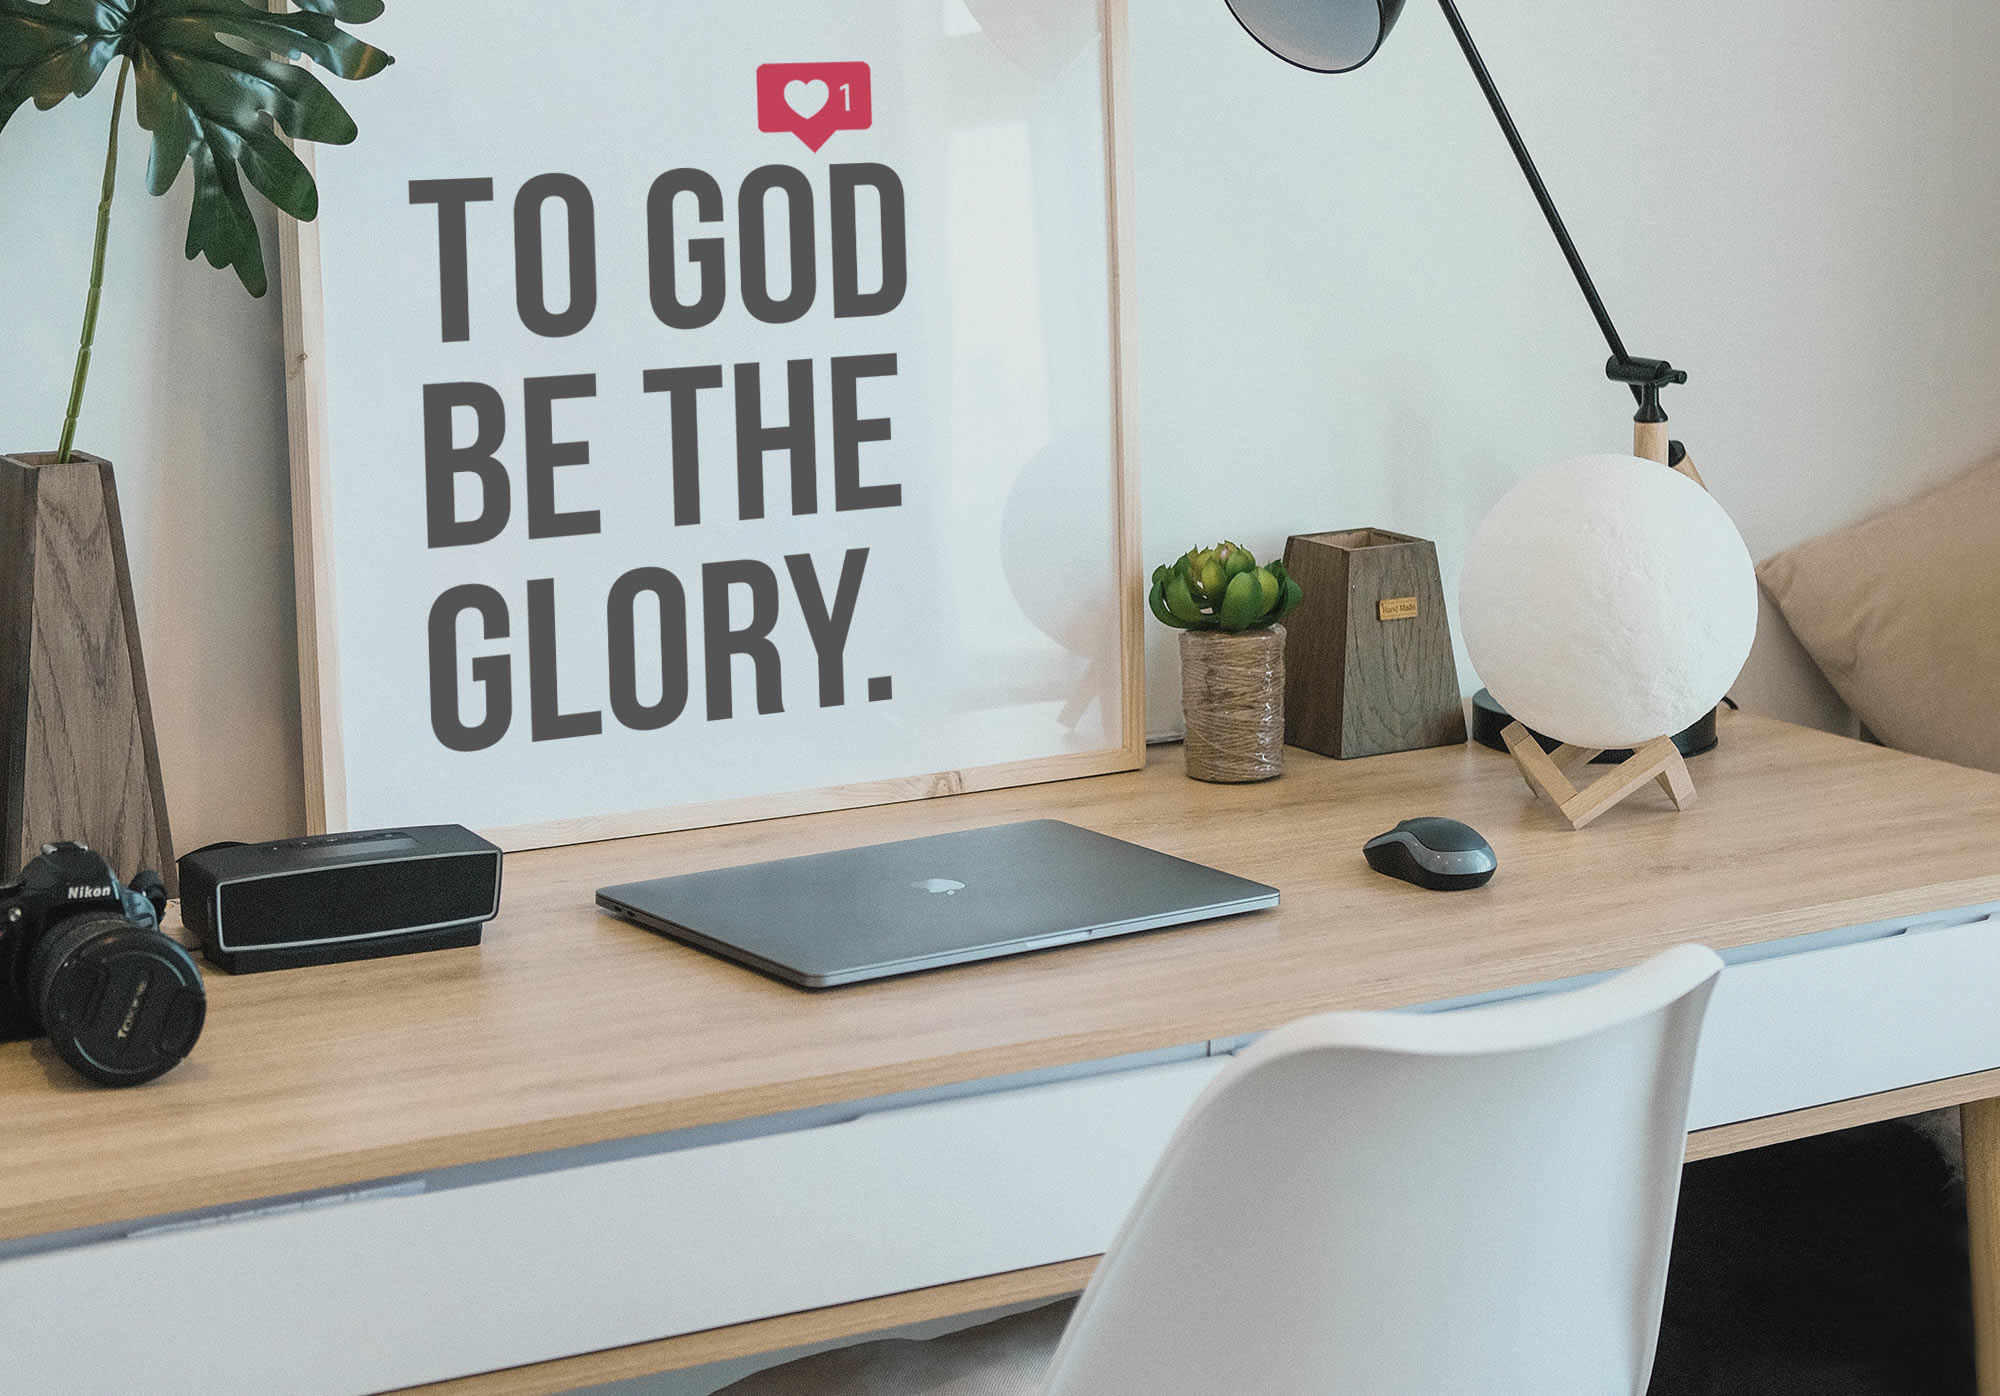 5 Easy Ways To Make Your Church's Social Graphics Unique